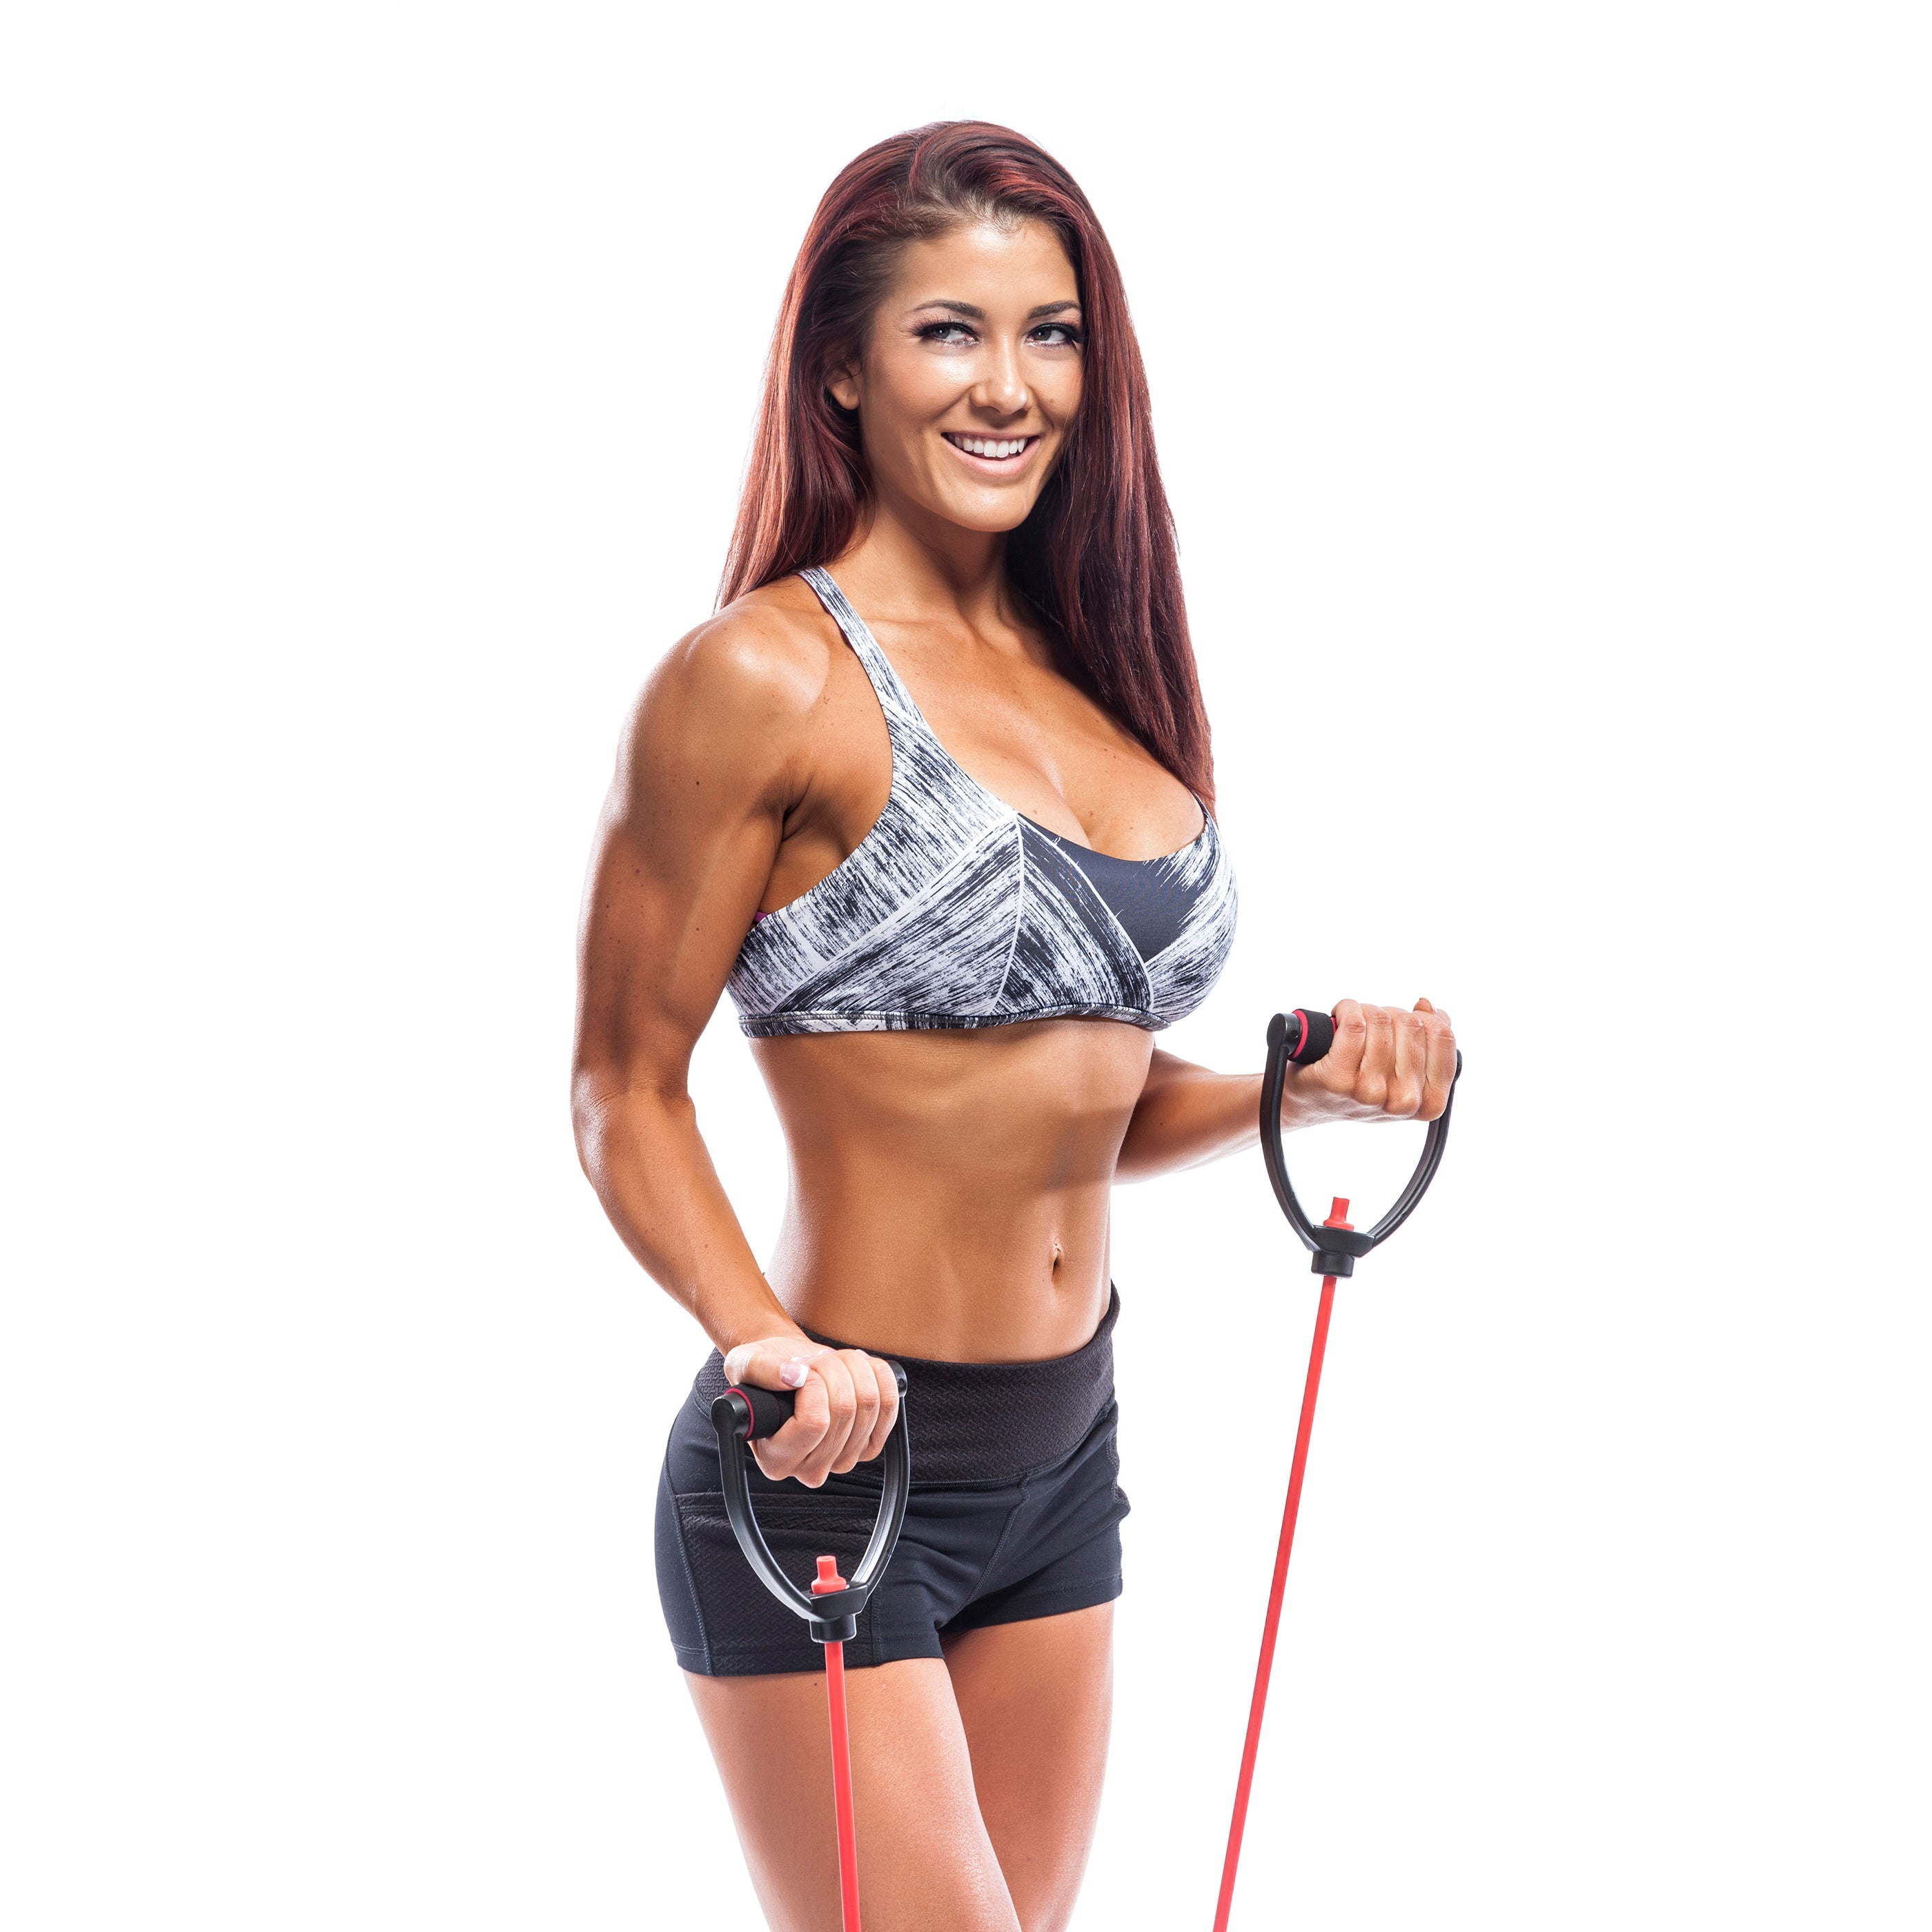 Increase your range of exercise with DynaPro resistance band